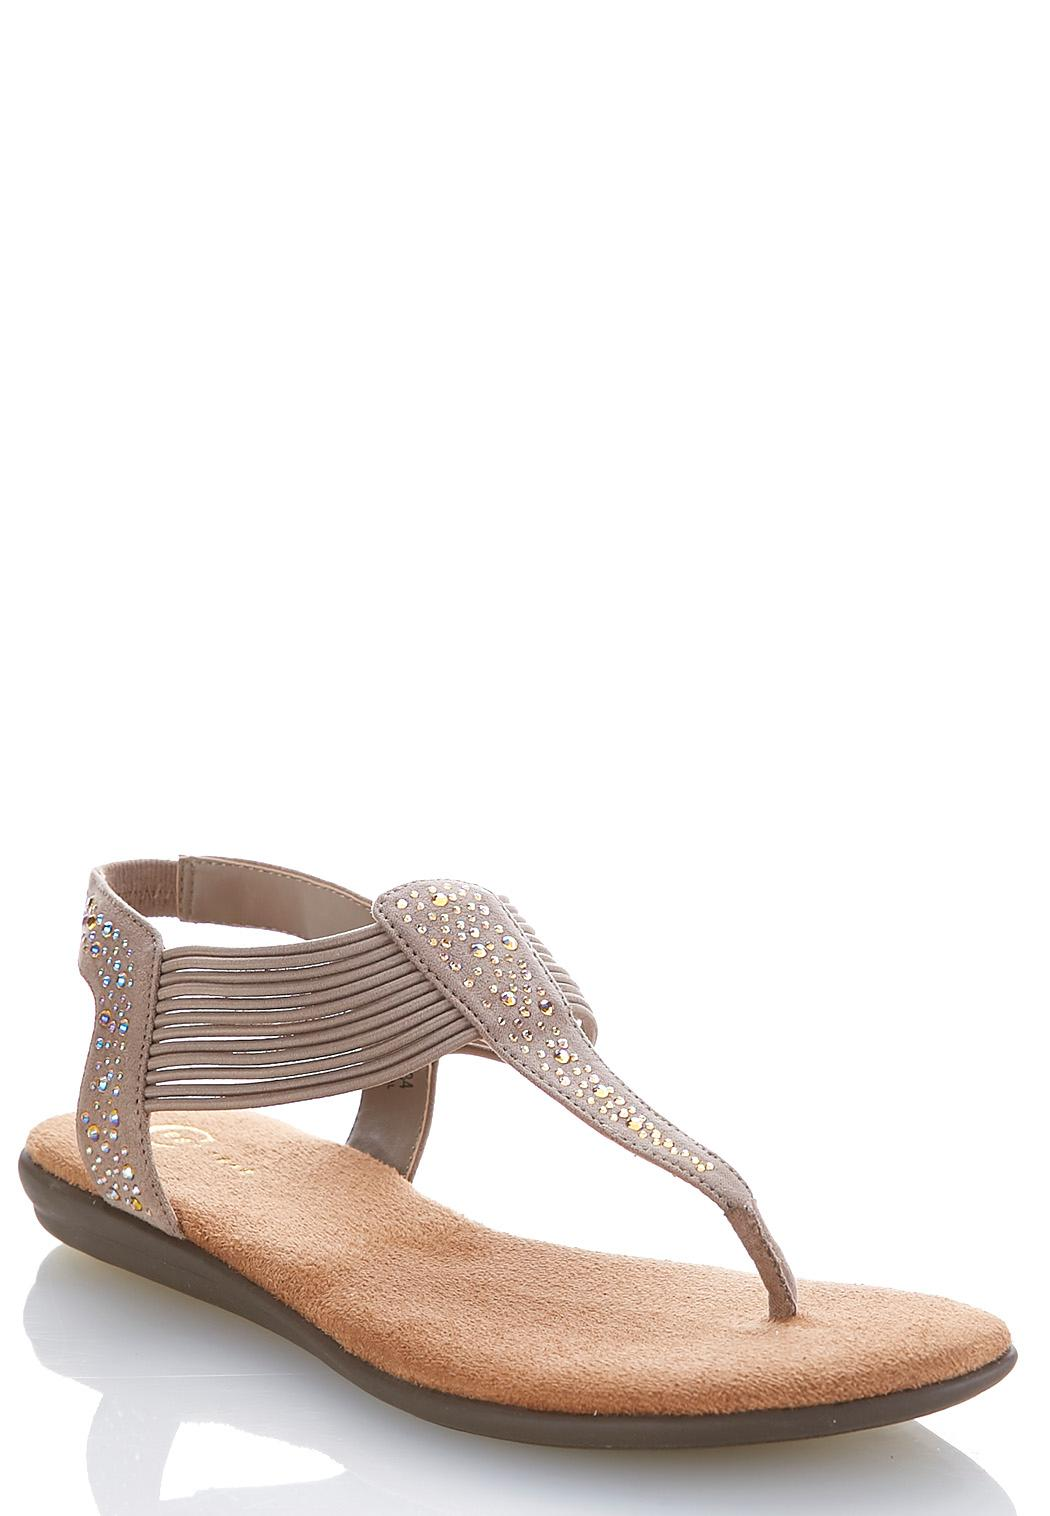 Stretch Band Embellished Sandals Sandals Cato Fashions - What is commercial invoice shoe stores online